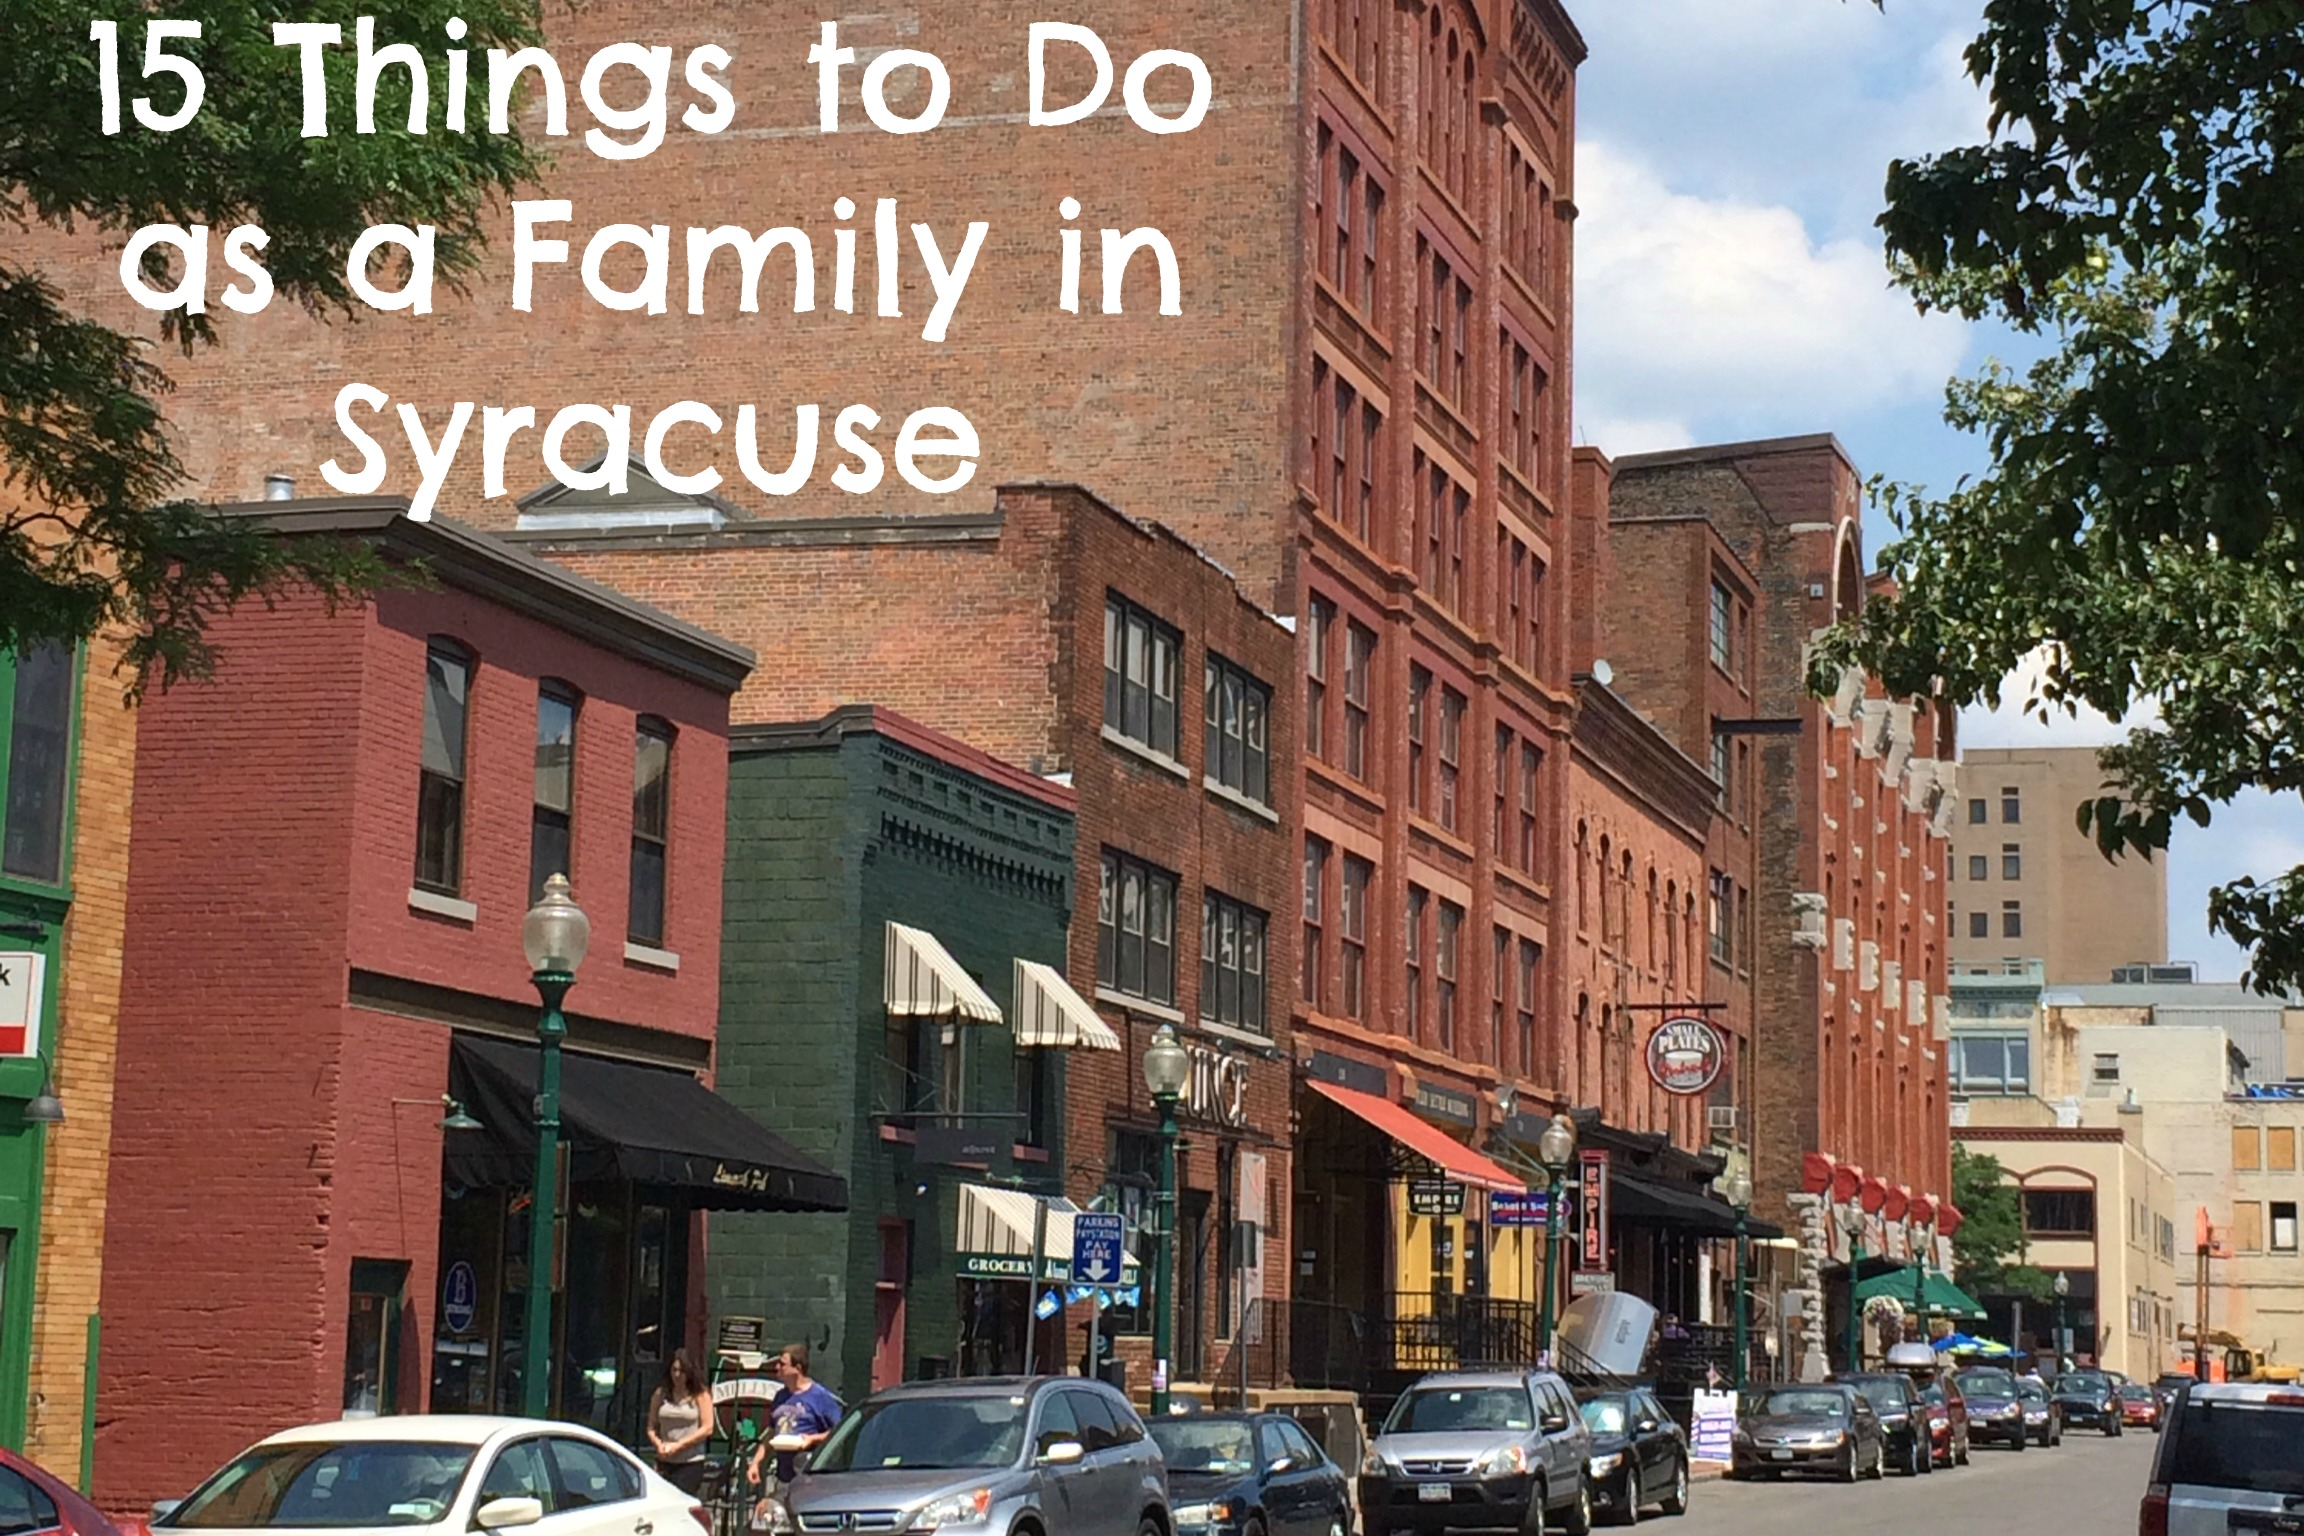 Things to do with kids in syracuse kids matttroy for What fun things to do in new york